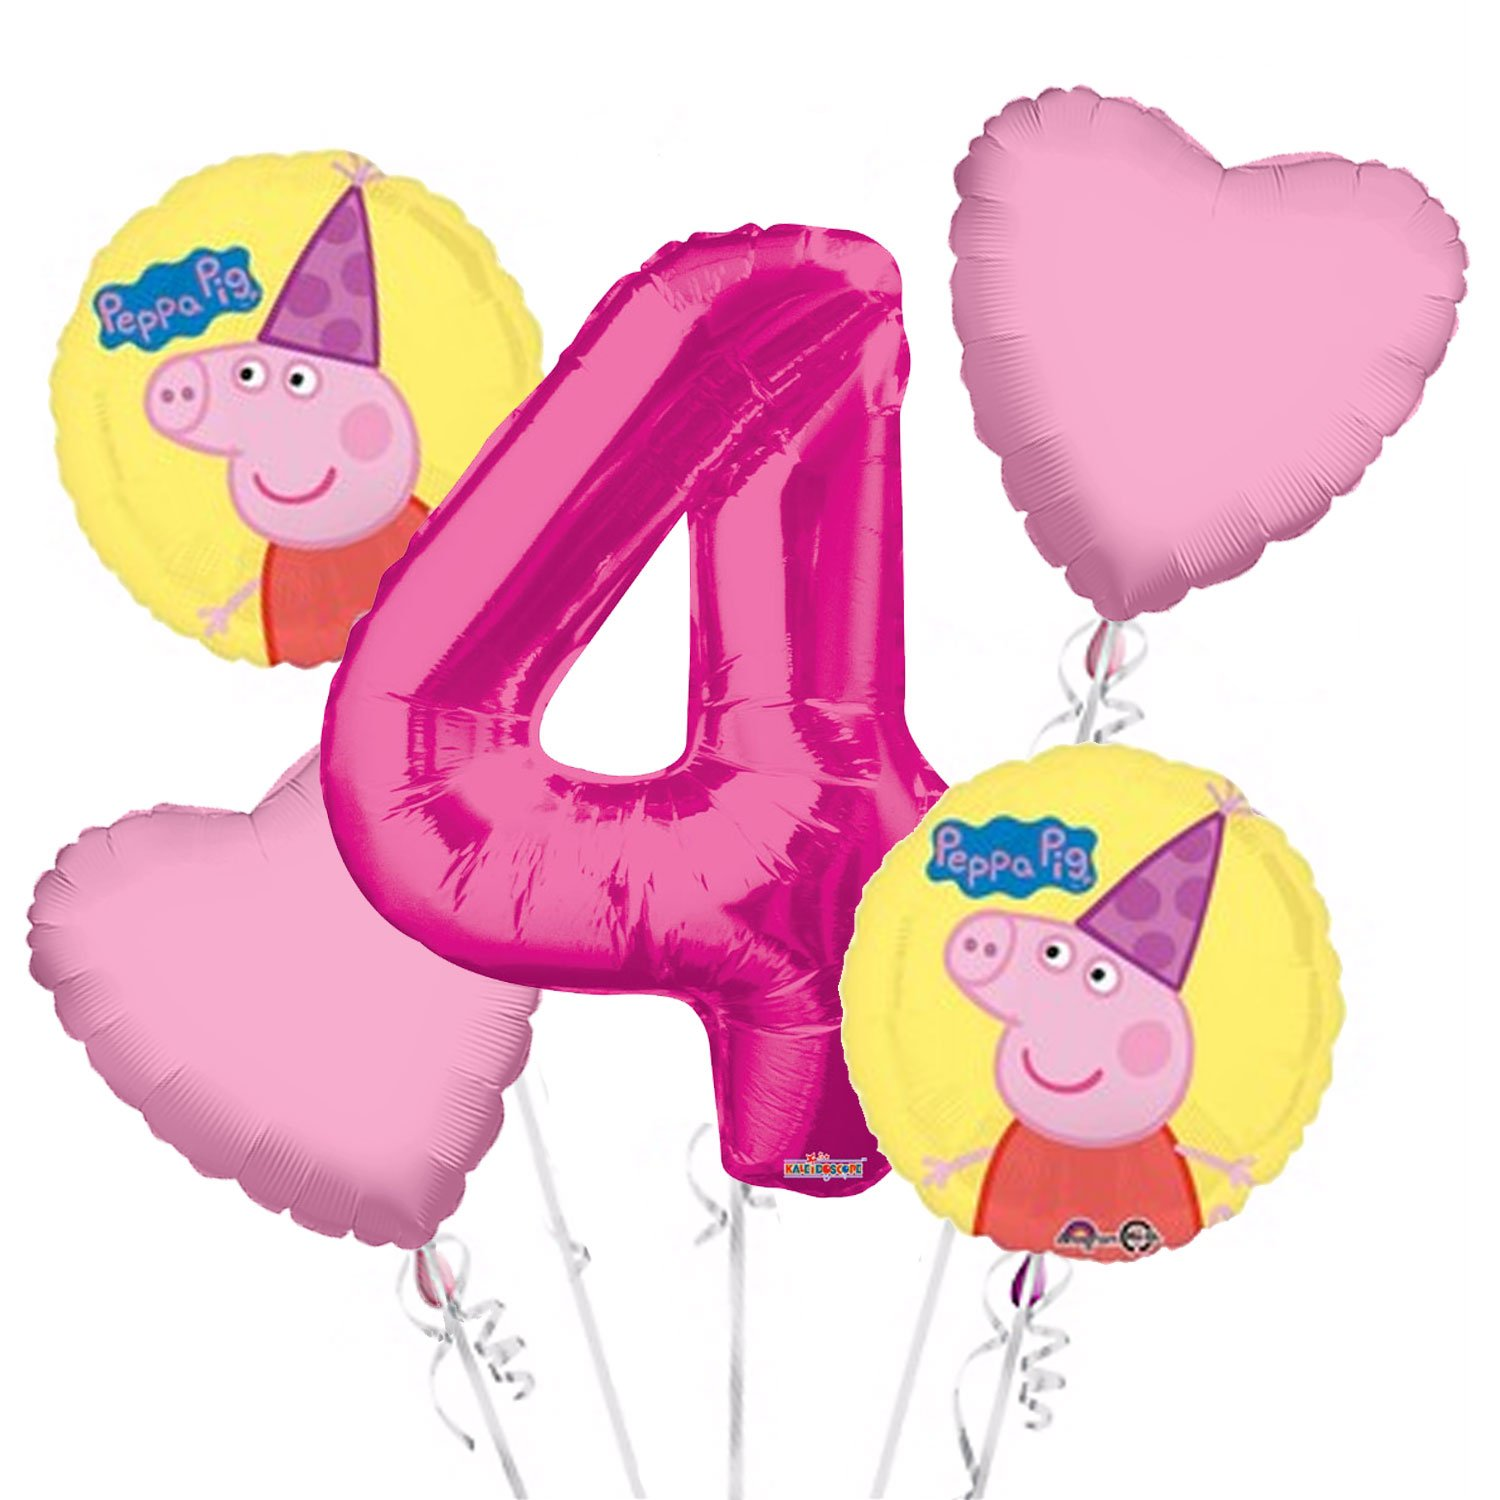 Peppa Pig Balloon Bouquet 4th Birthday 5 pcs - Party Supplies Pink, 1 Giant Number 4 Balloon, 34in By Viva Party